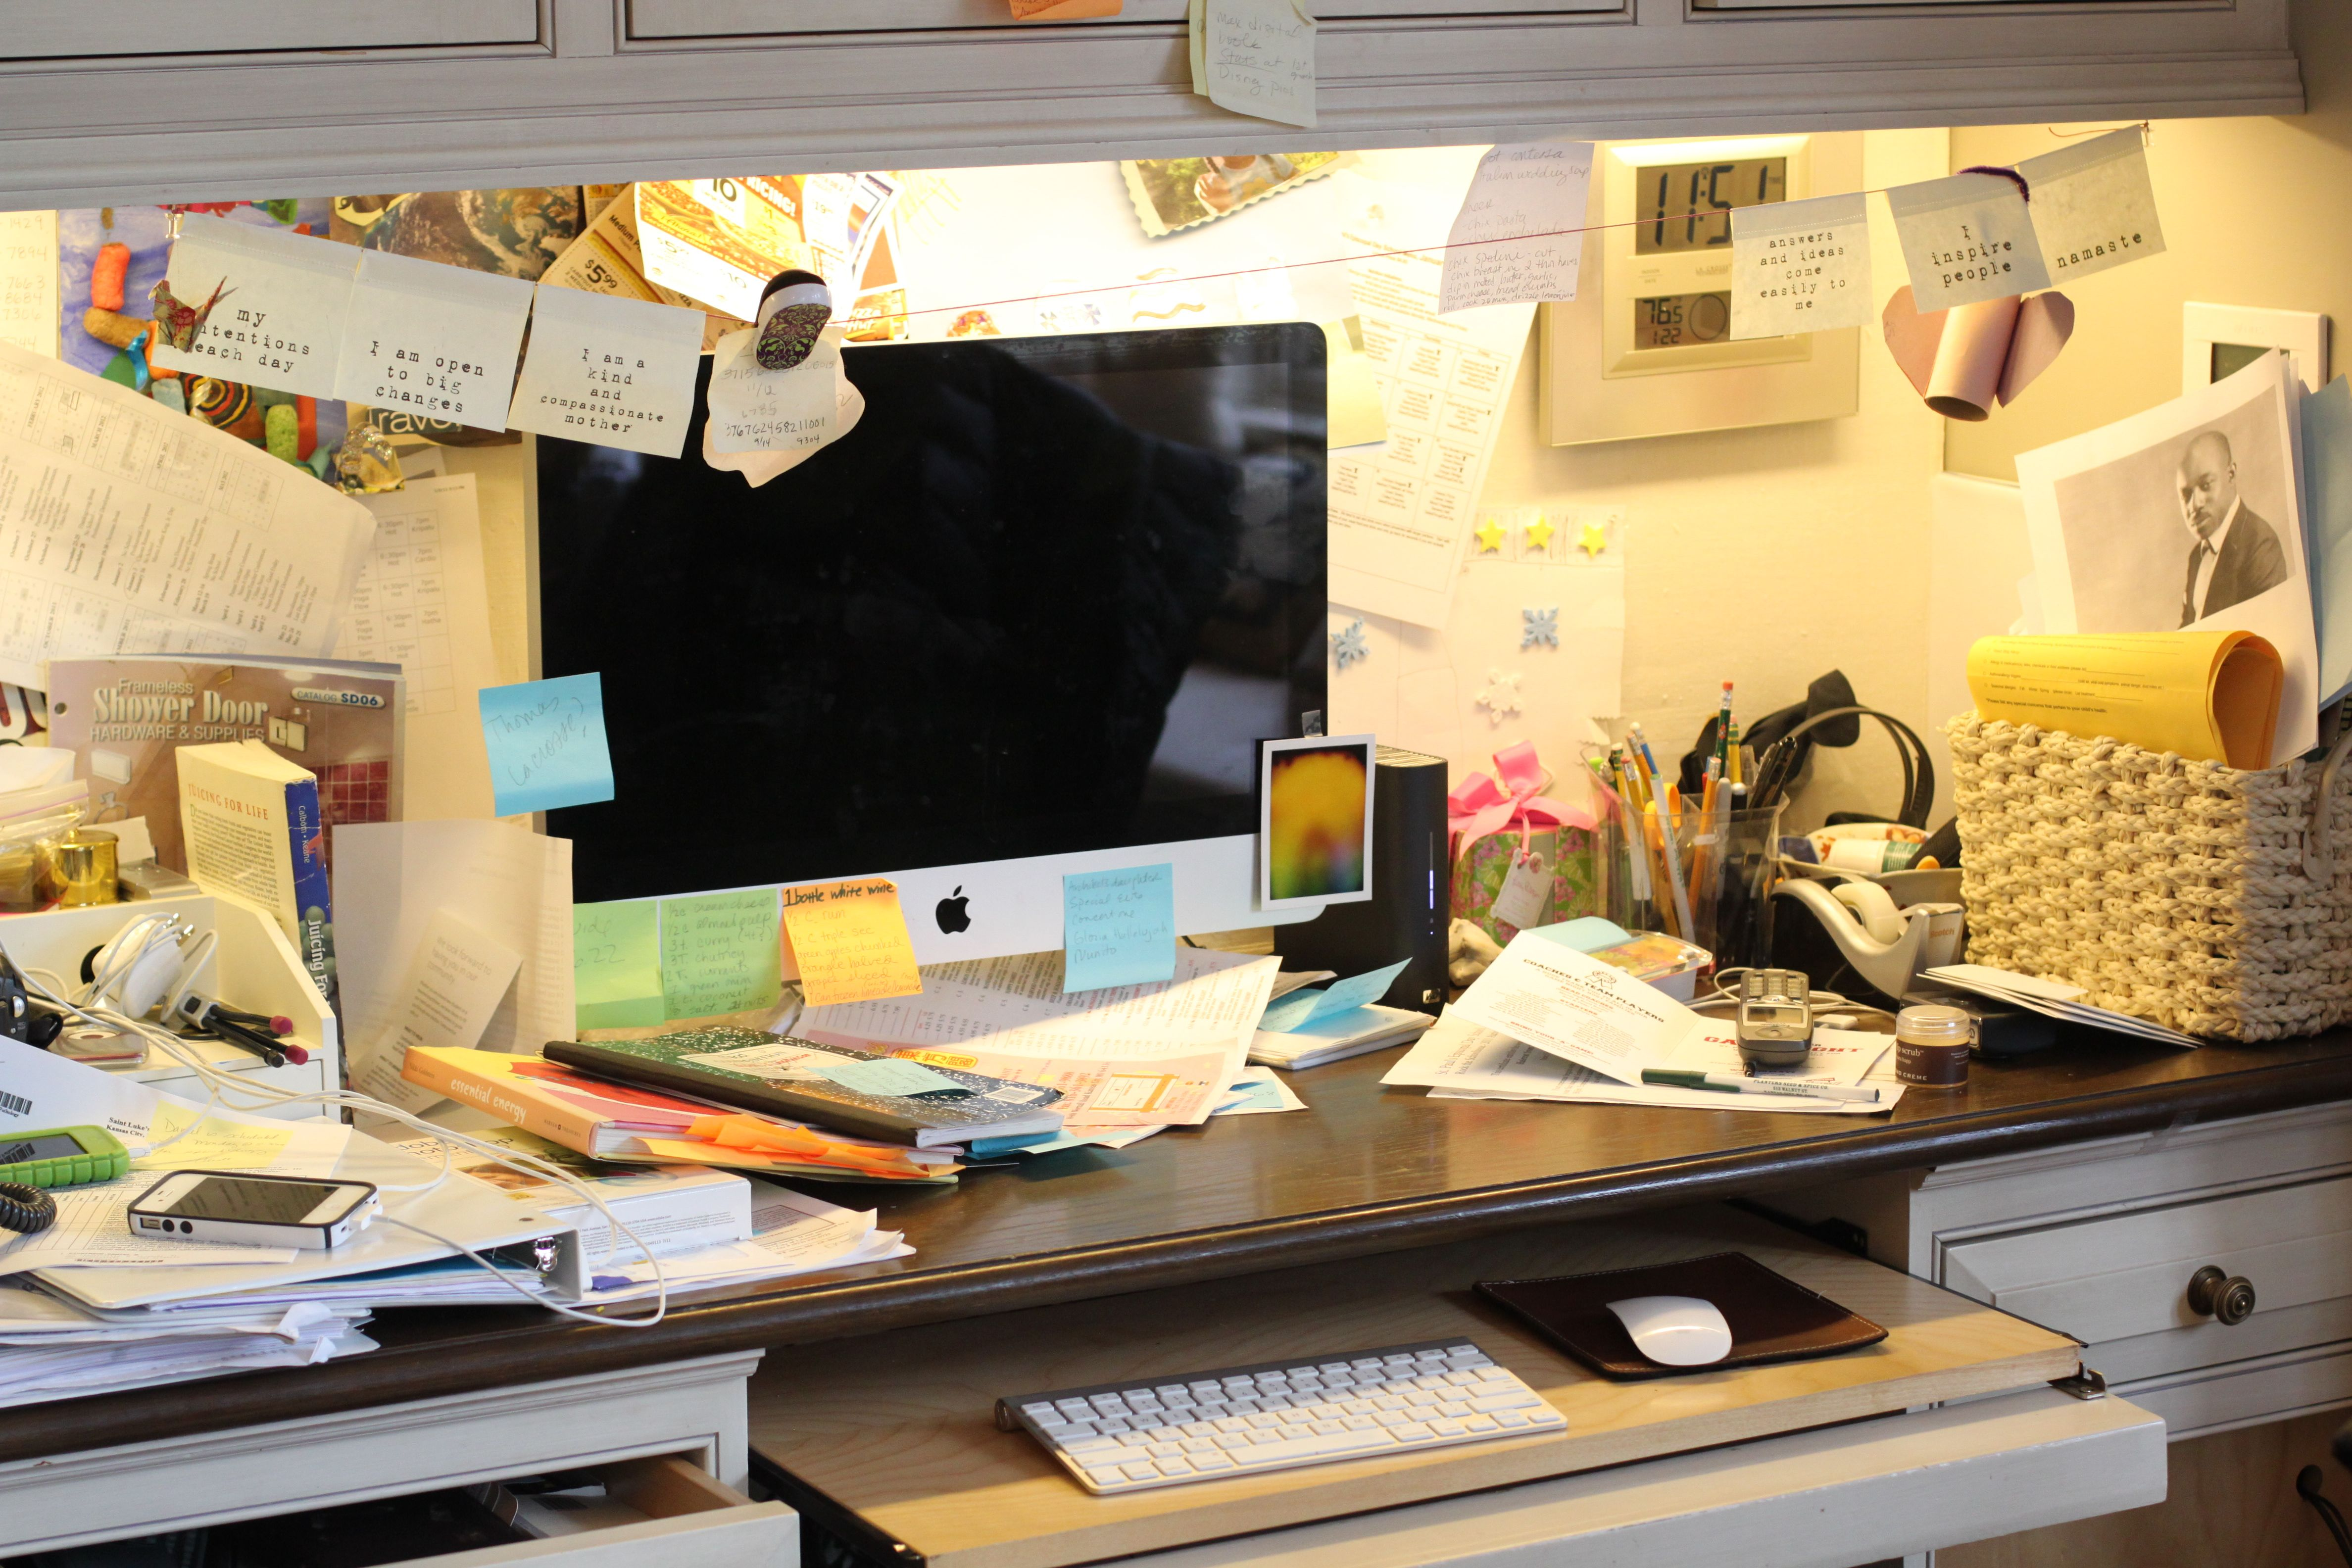 extremely cluttered office desk